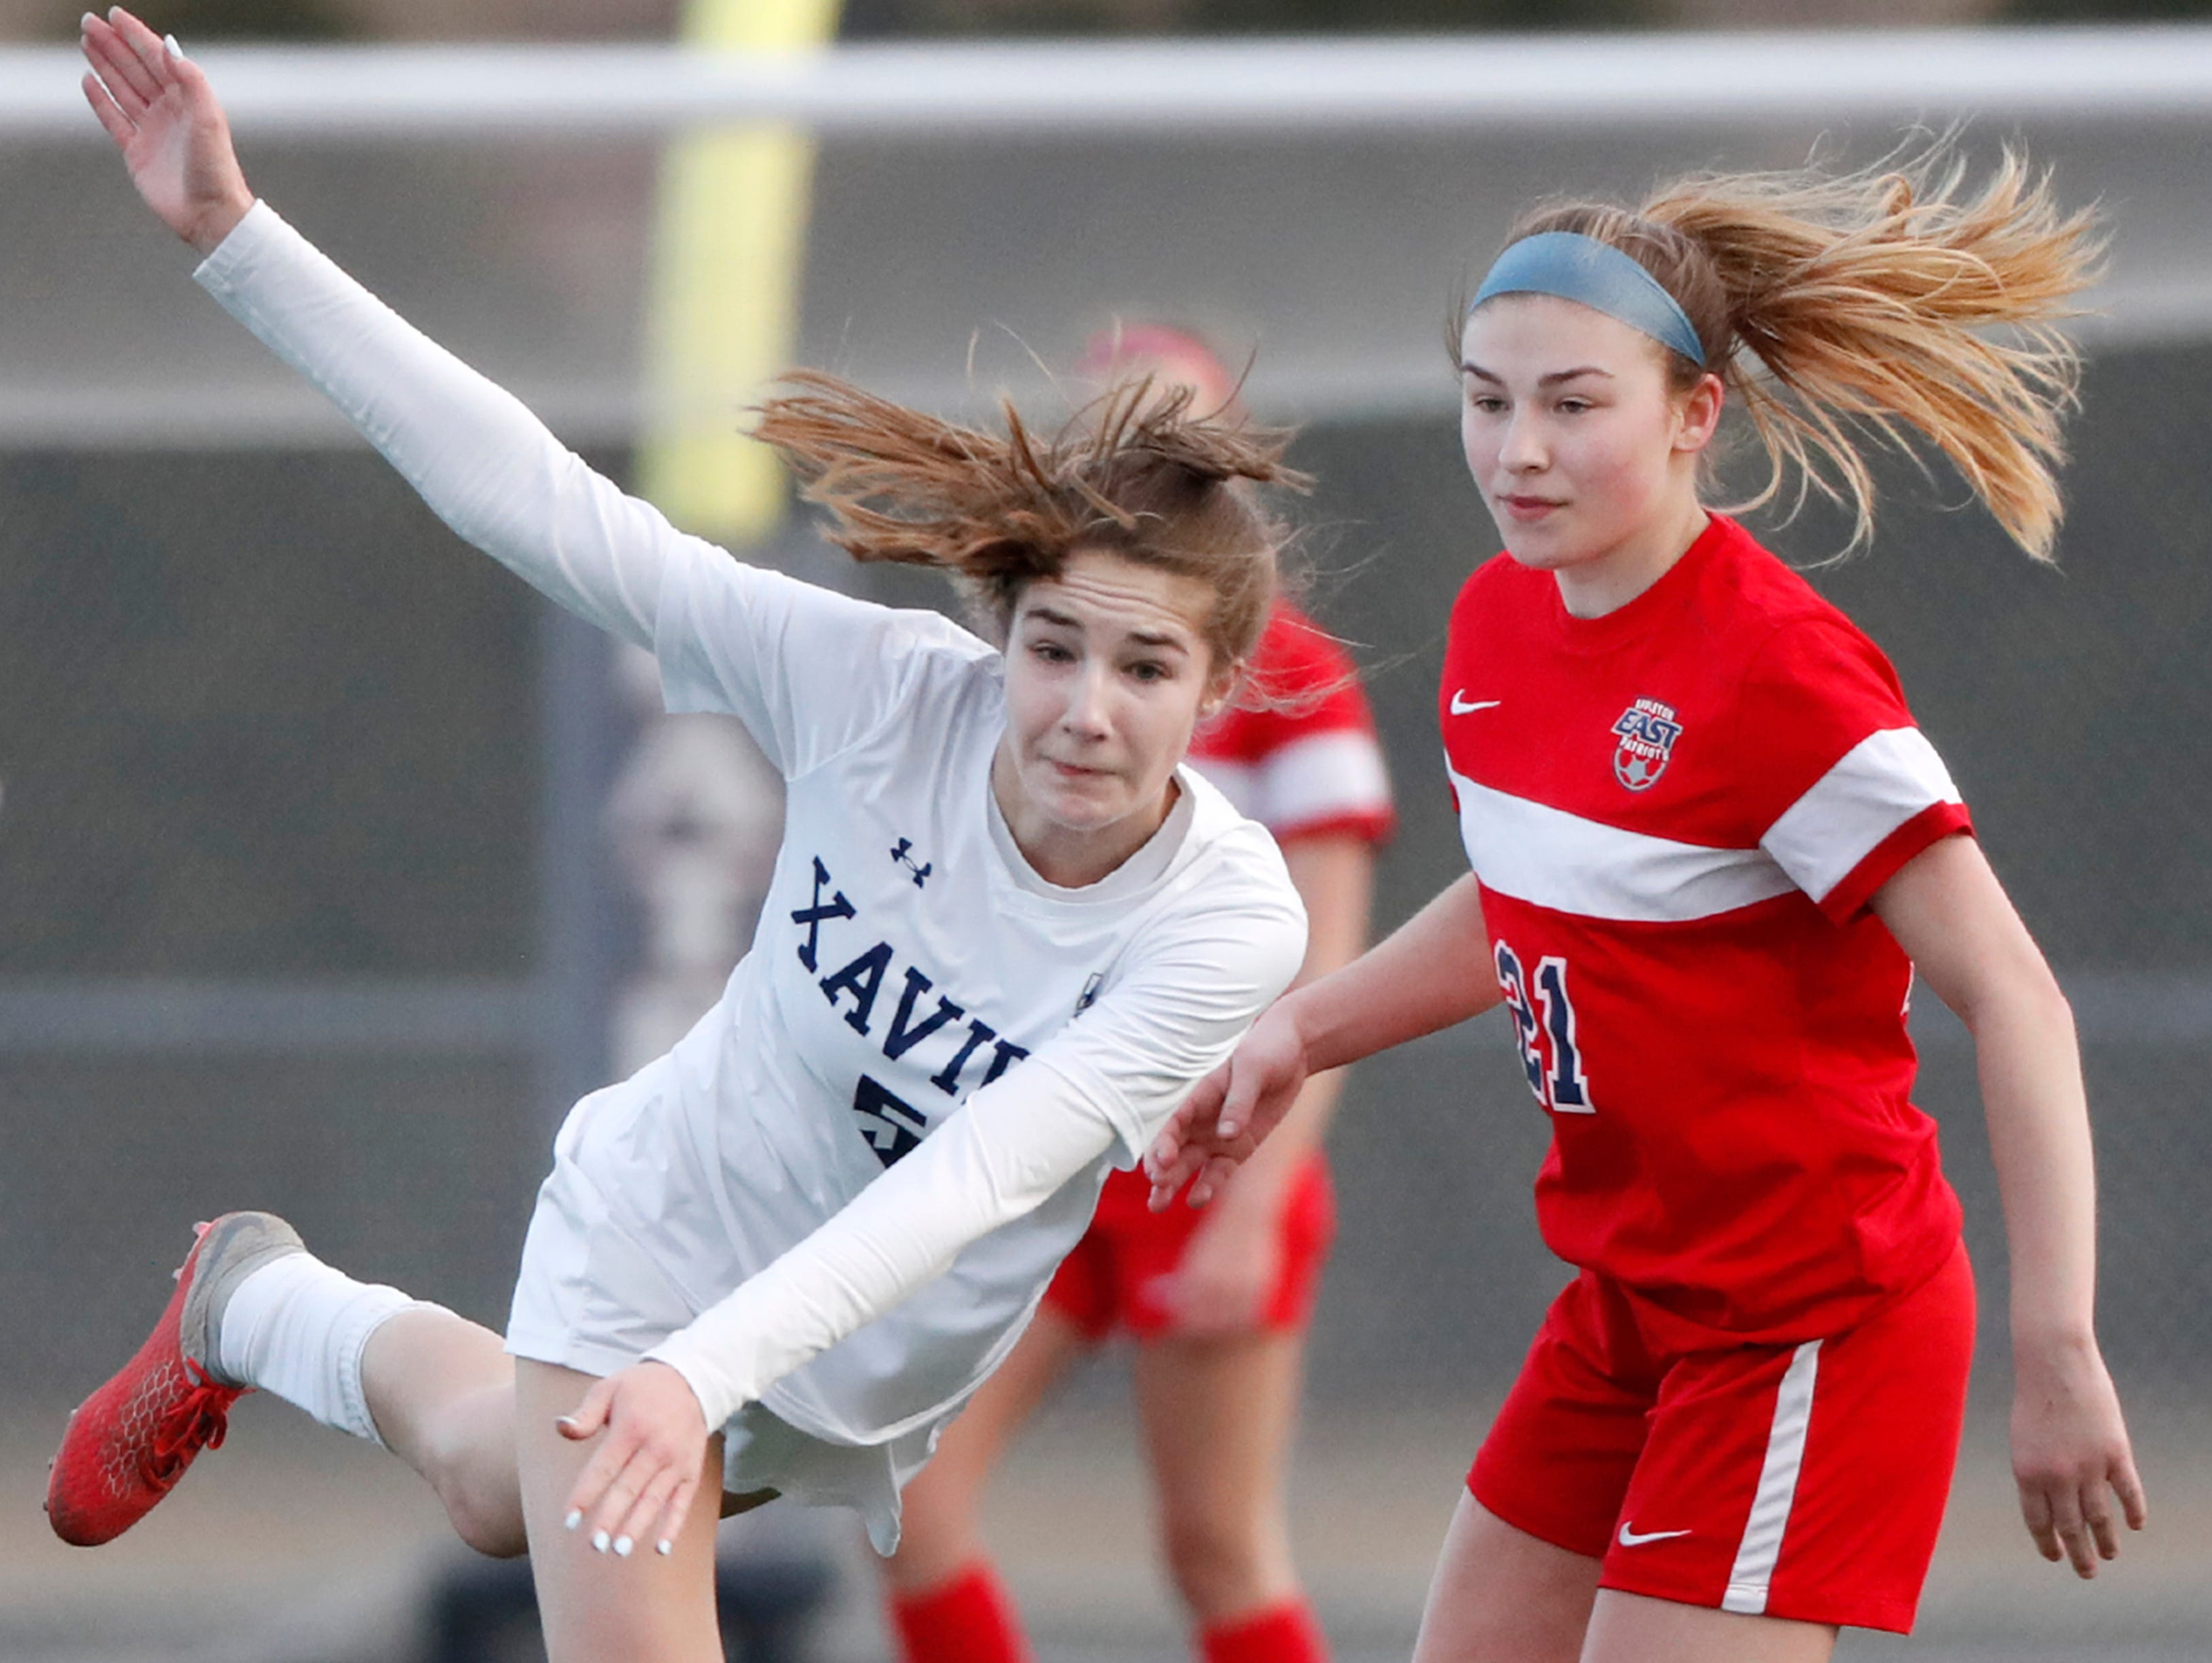 Xavier High School's Anna Rose Van Ye tries to regain her footing after getting past Appleton East High SchoolÕs Baylee Ahrens Friday, April 5, 2019, in Appleton, Wis. Danny Damiani/USA TODAY NETWORK-Wisconsin